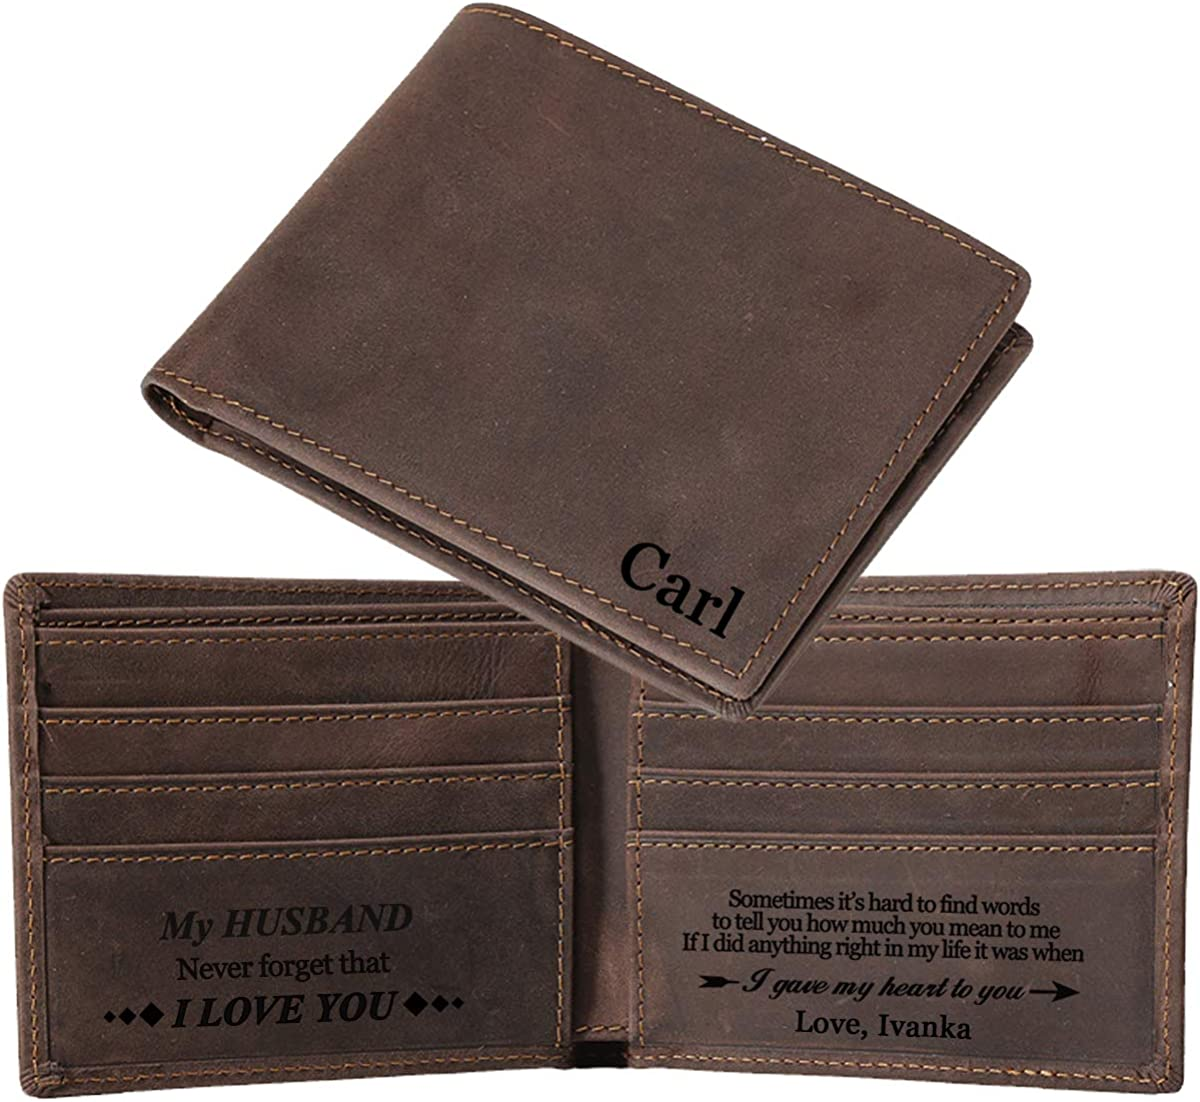 Personalized Wallets For Men, Genuine Leather RFID Bifold Wallets Mens Gifts